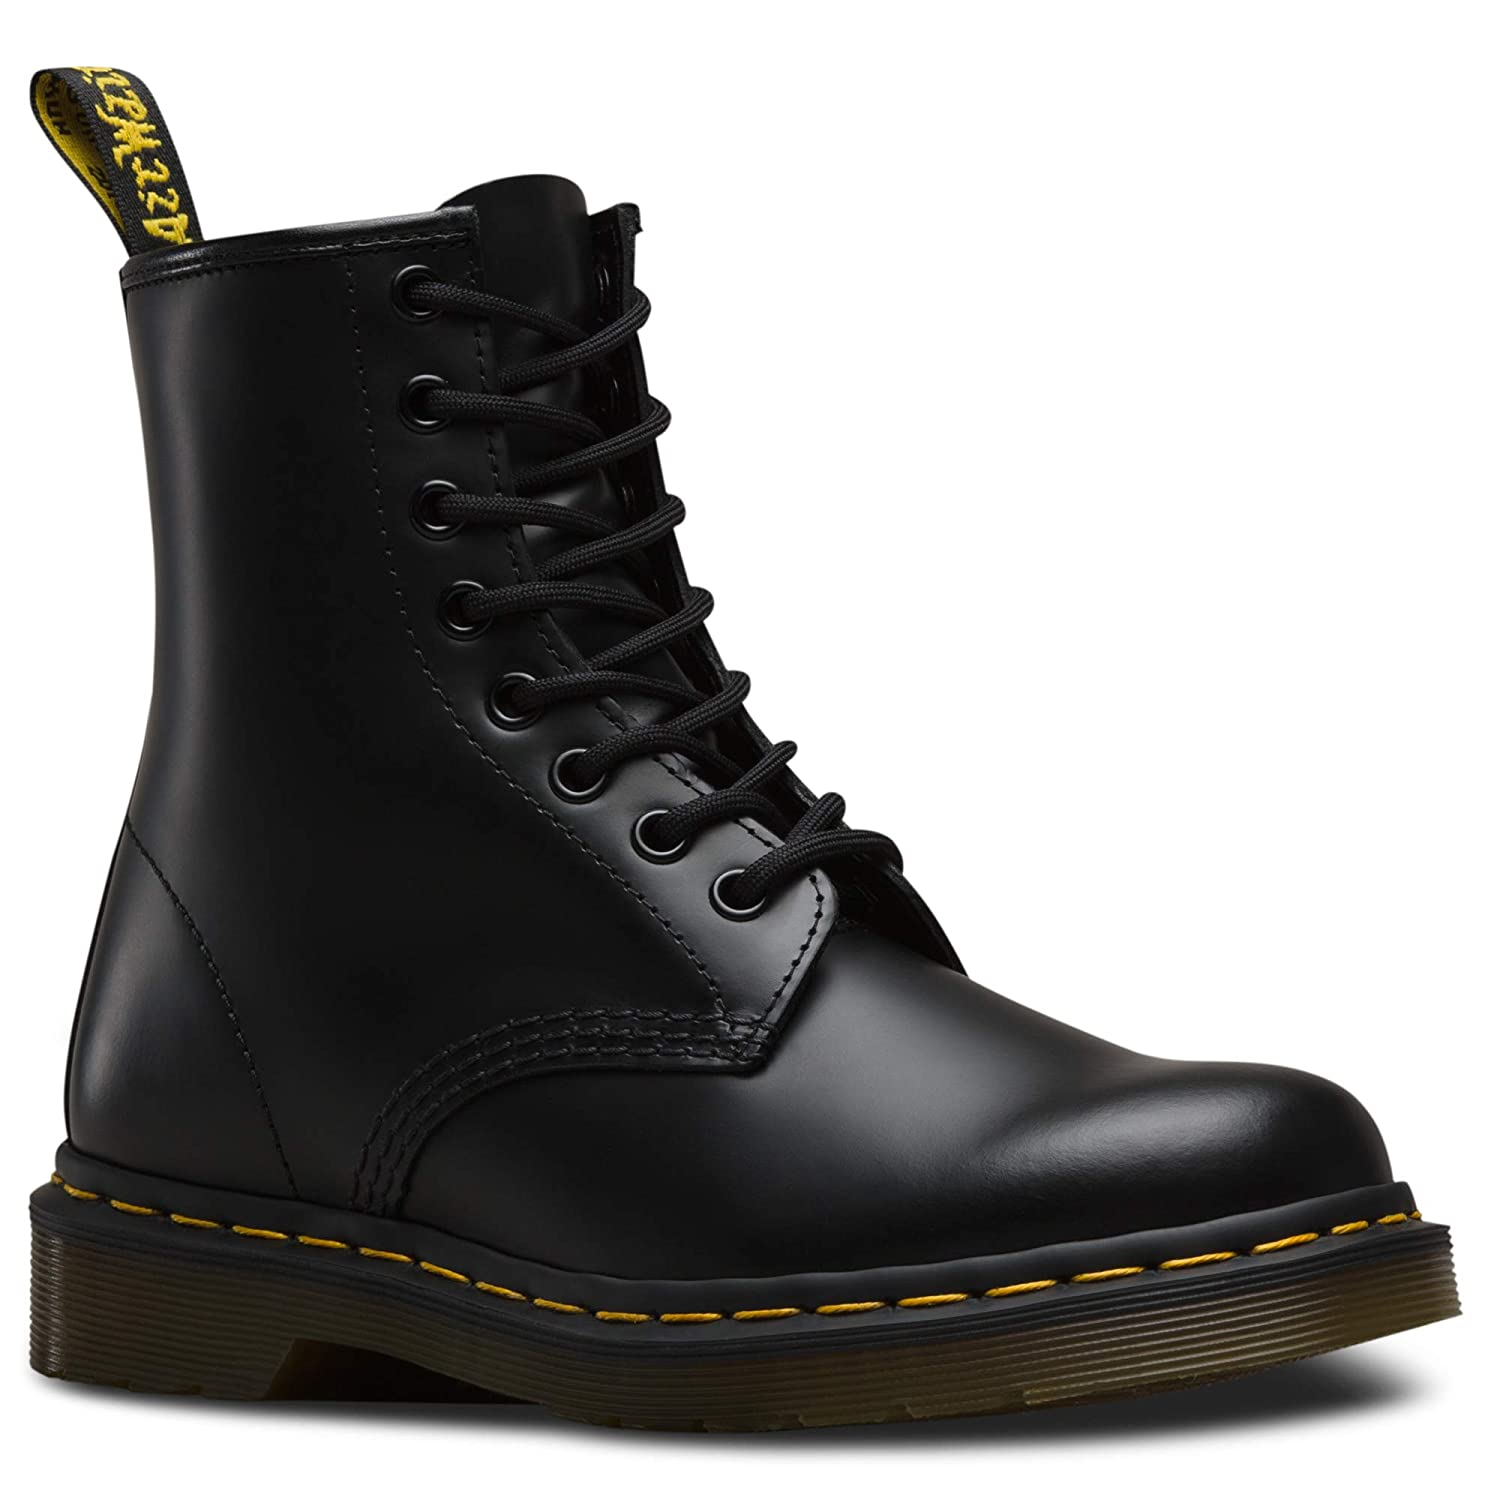 819691f0d3f Dr. Martens unisex-adult 1460 Originals 8 Eye Lace Up Boot